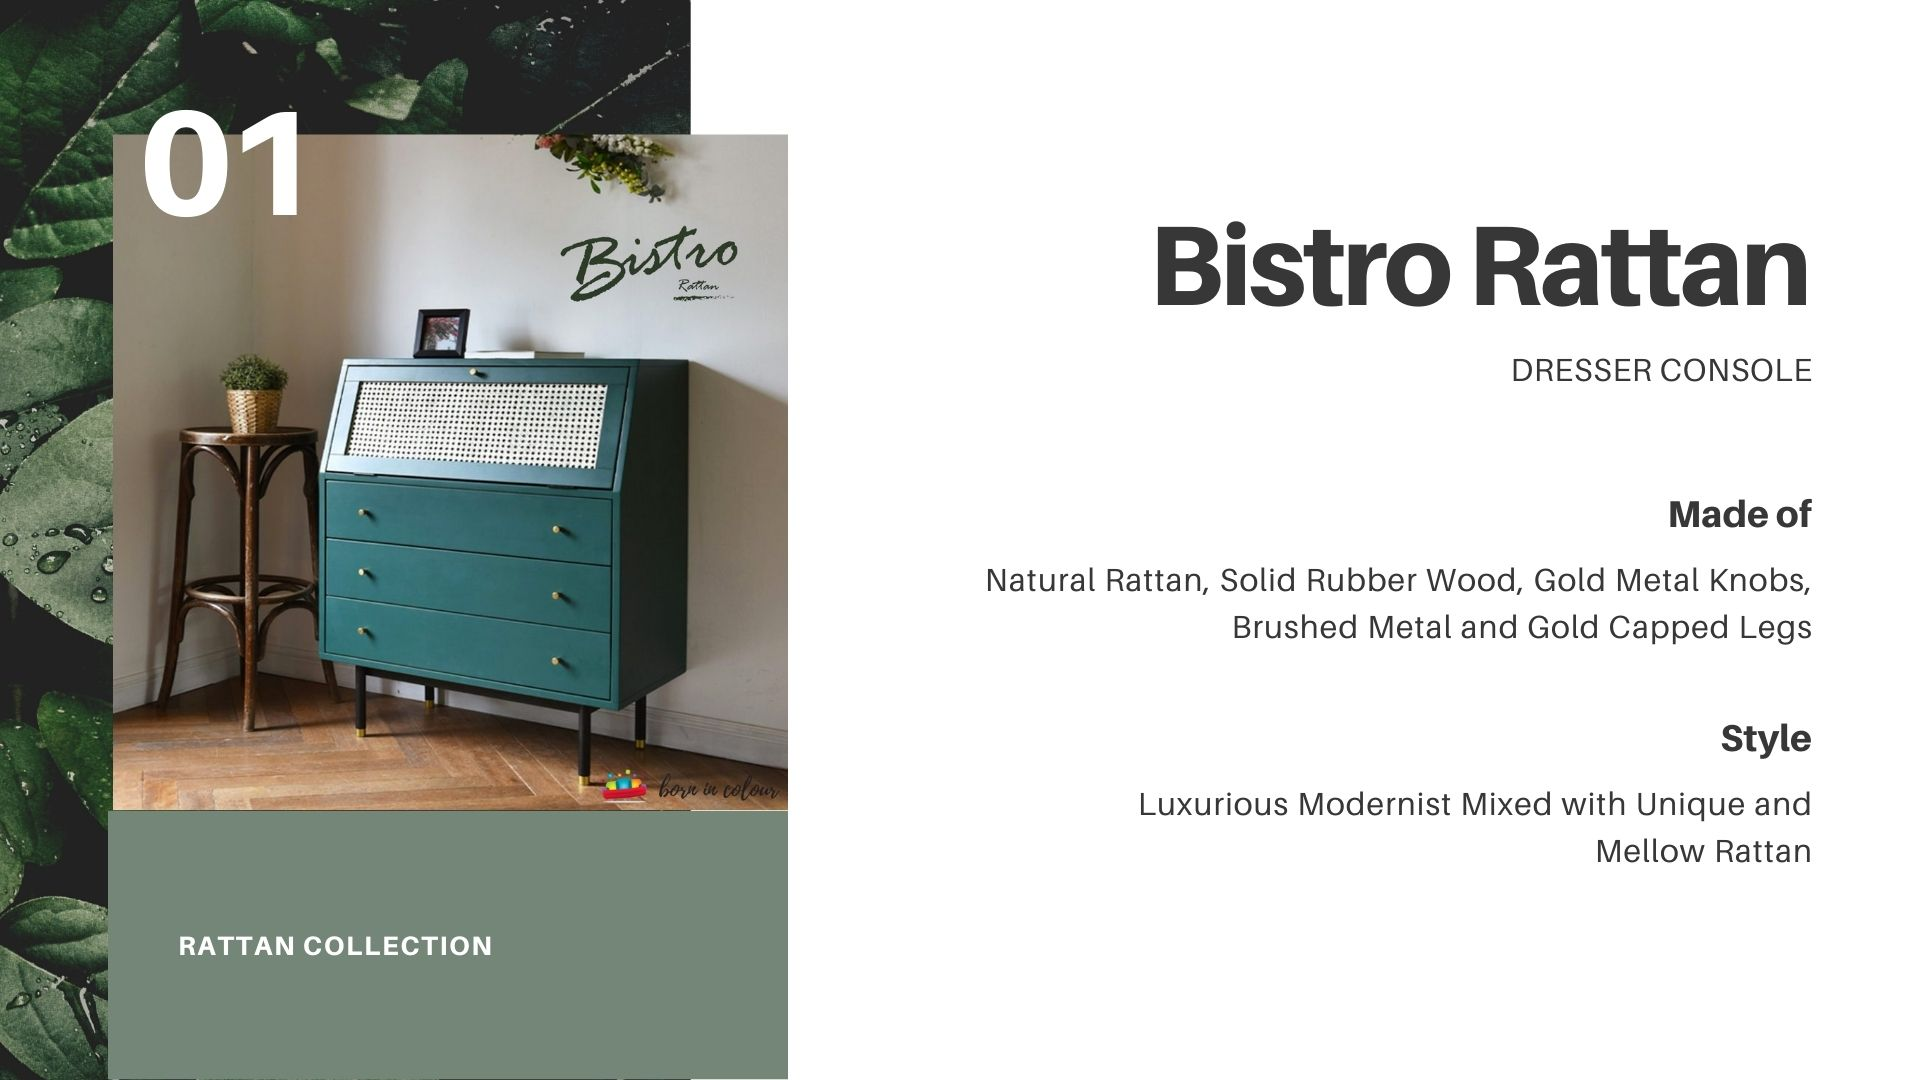 Rattan Collection Bistro Rattan Dresser Console